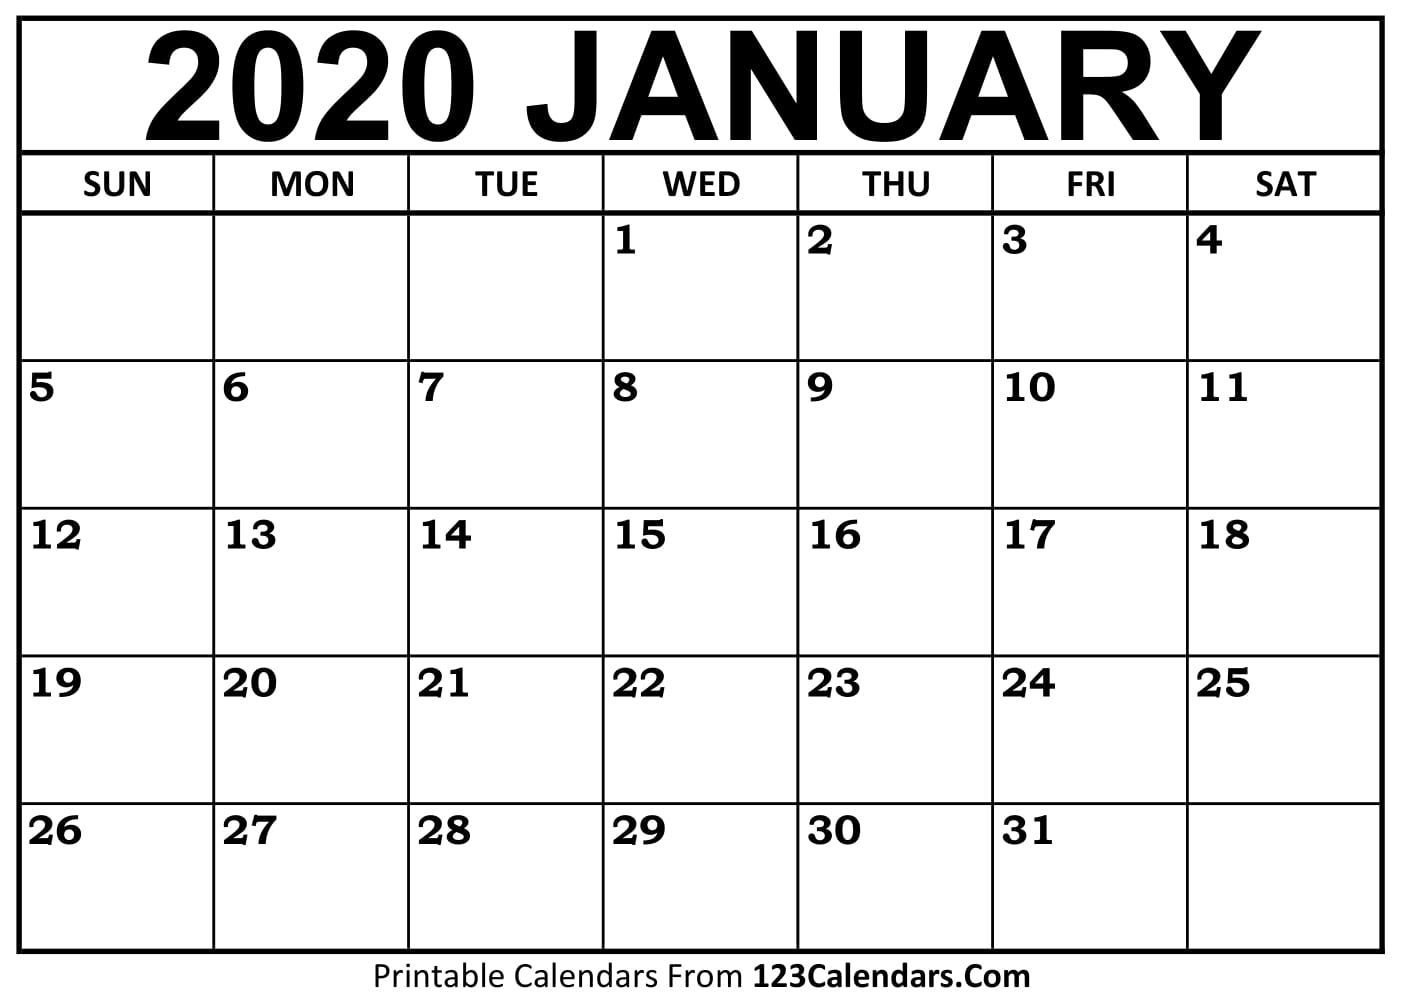 Universal Calendars You Can Edit Online In 2020